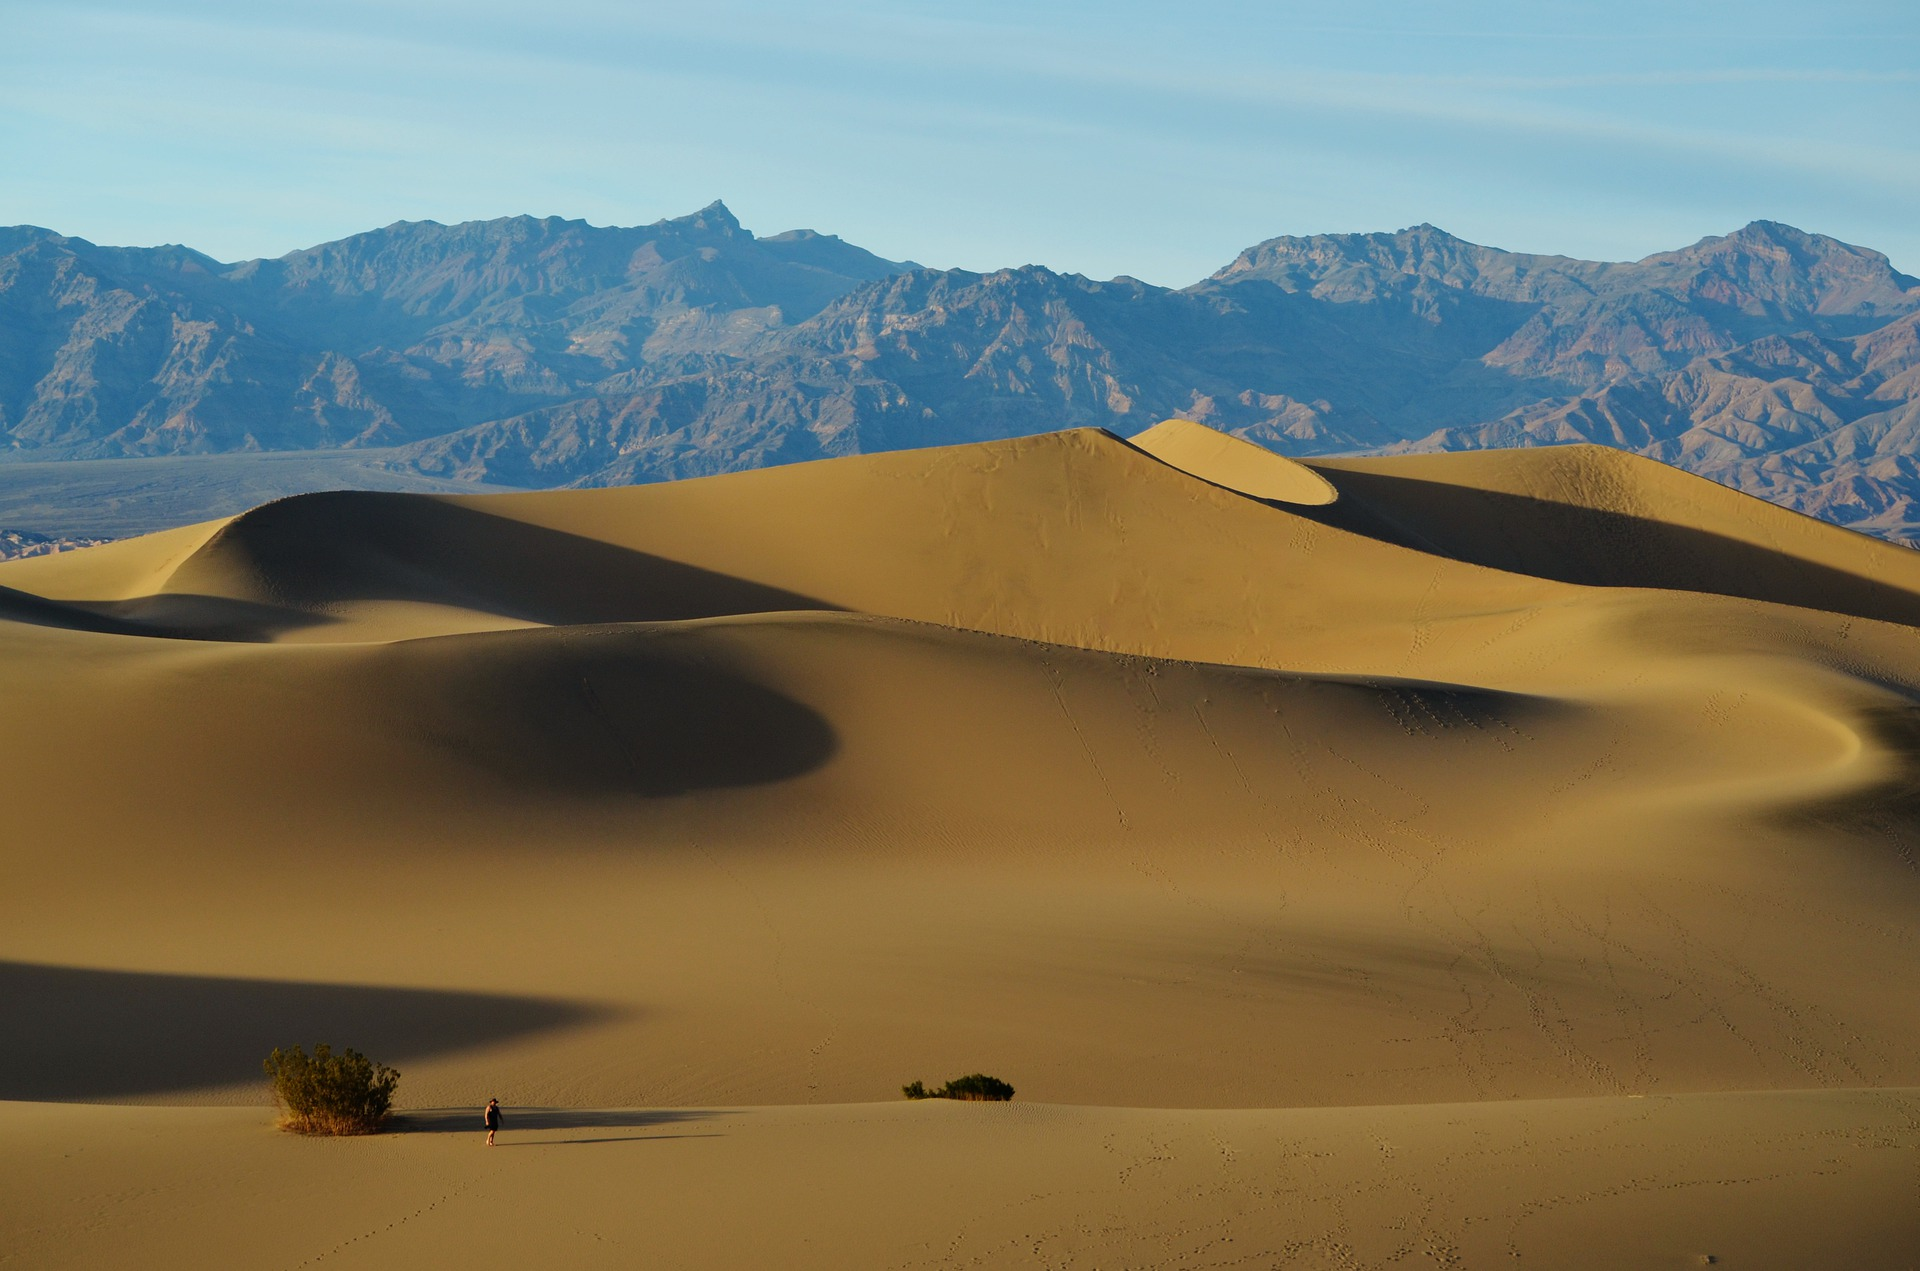 Creamy sand dunes in foreground, rugged mountains in background.